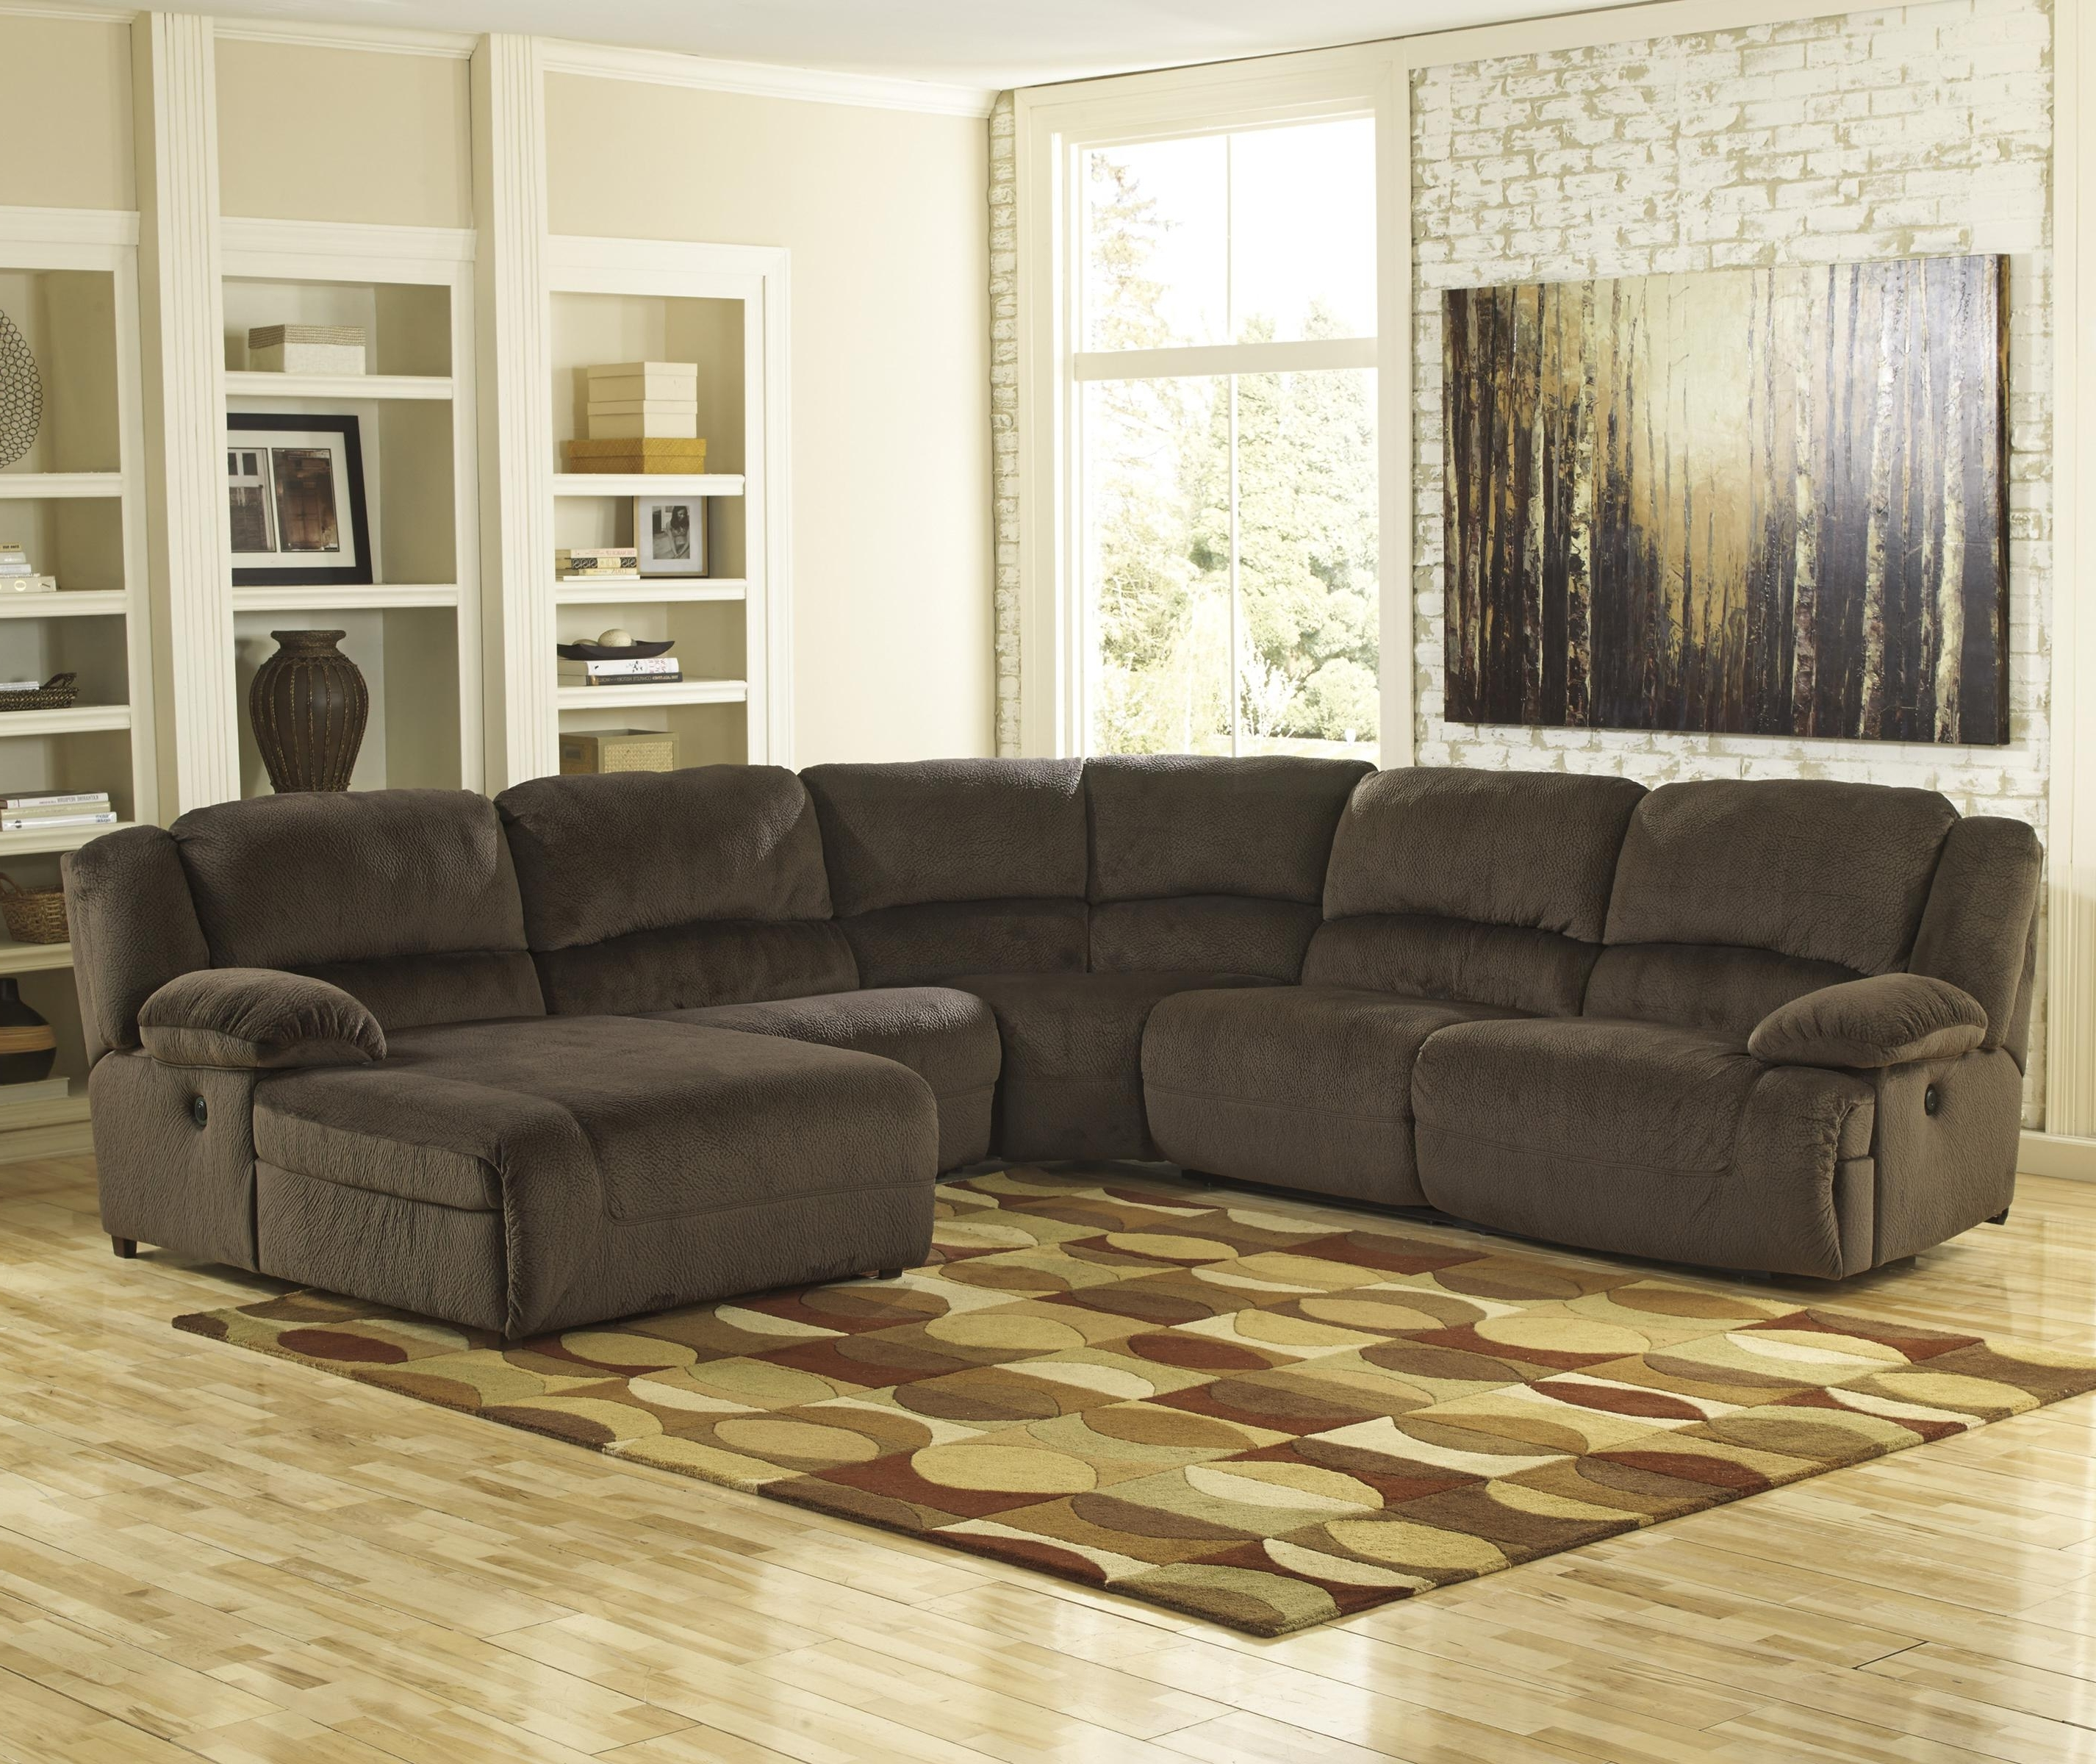 Sectional Sofas At Birmingham Al With Regard To 2018 Toletta – Chocolate Power Reclining Sectional With Chaise (View 15 of 20)